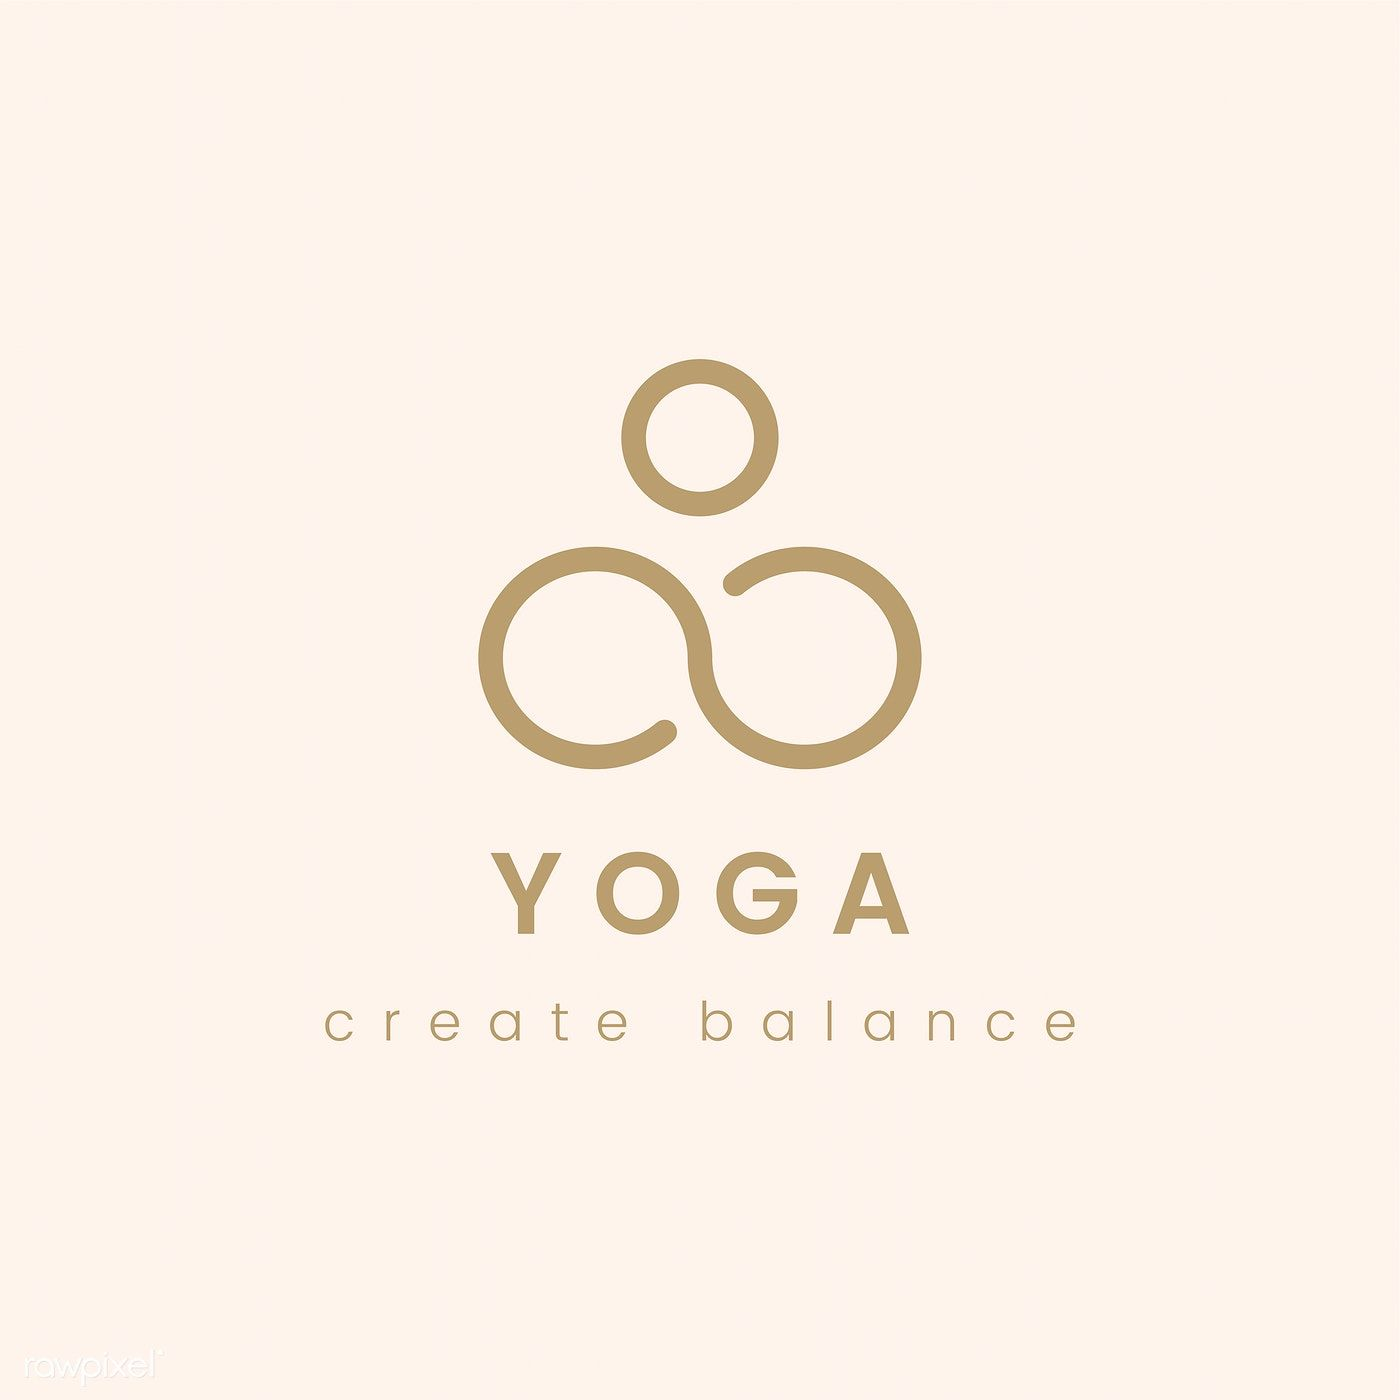 Design Of Yoga Create Balance Logo Vector Free Image By Rawpixel Com Yoga Logo Design Yoga Logo Logo Design